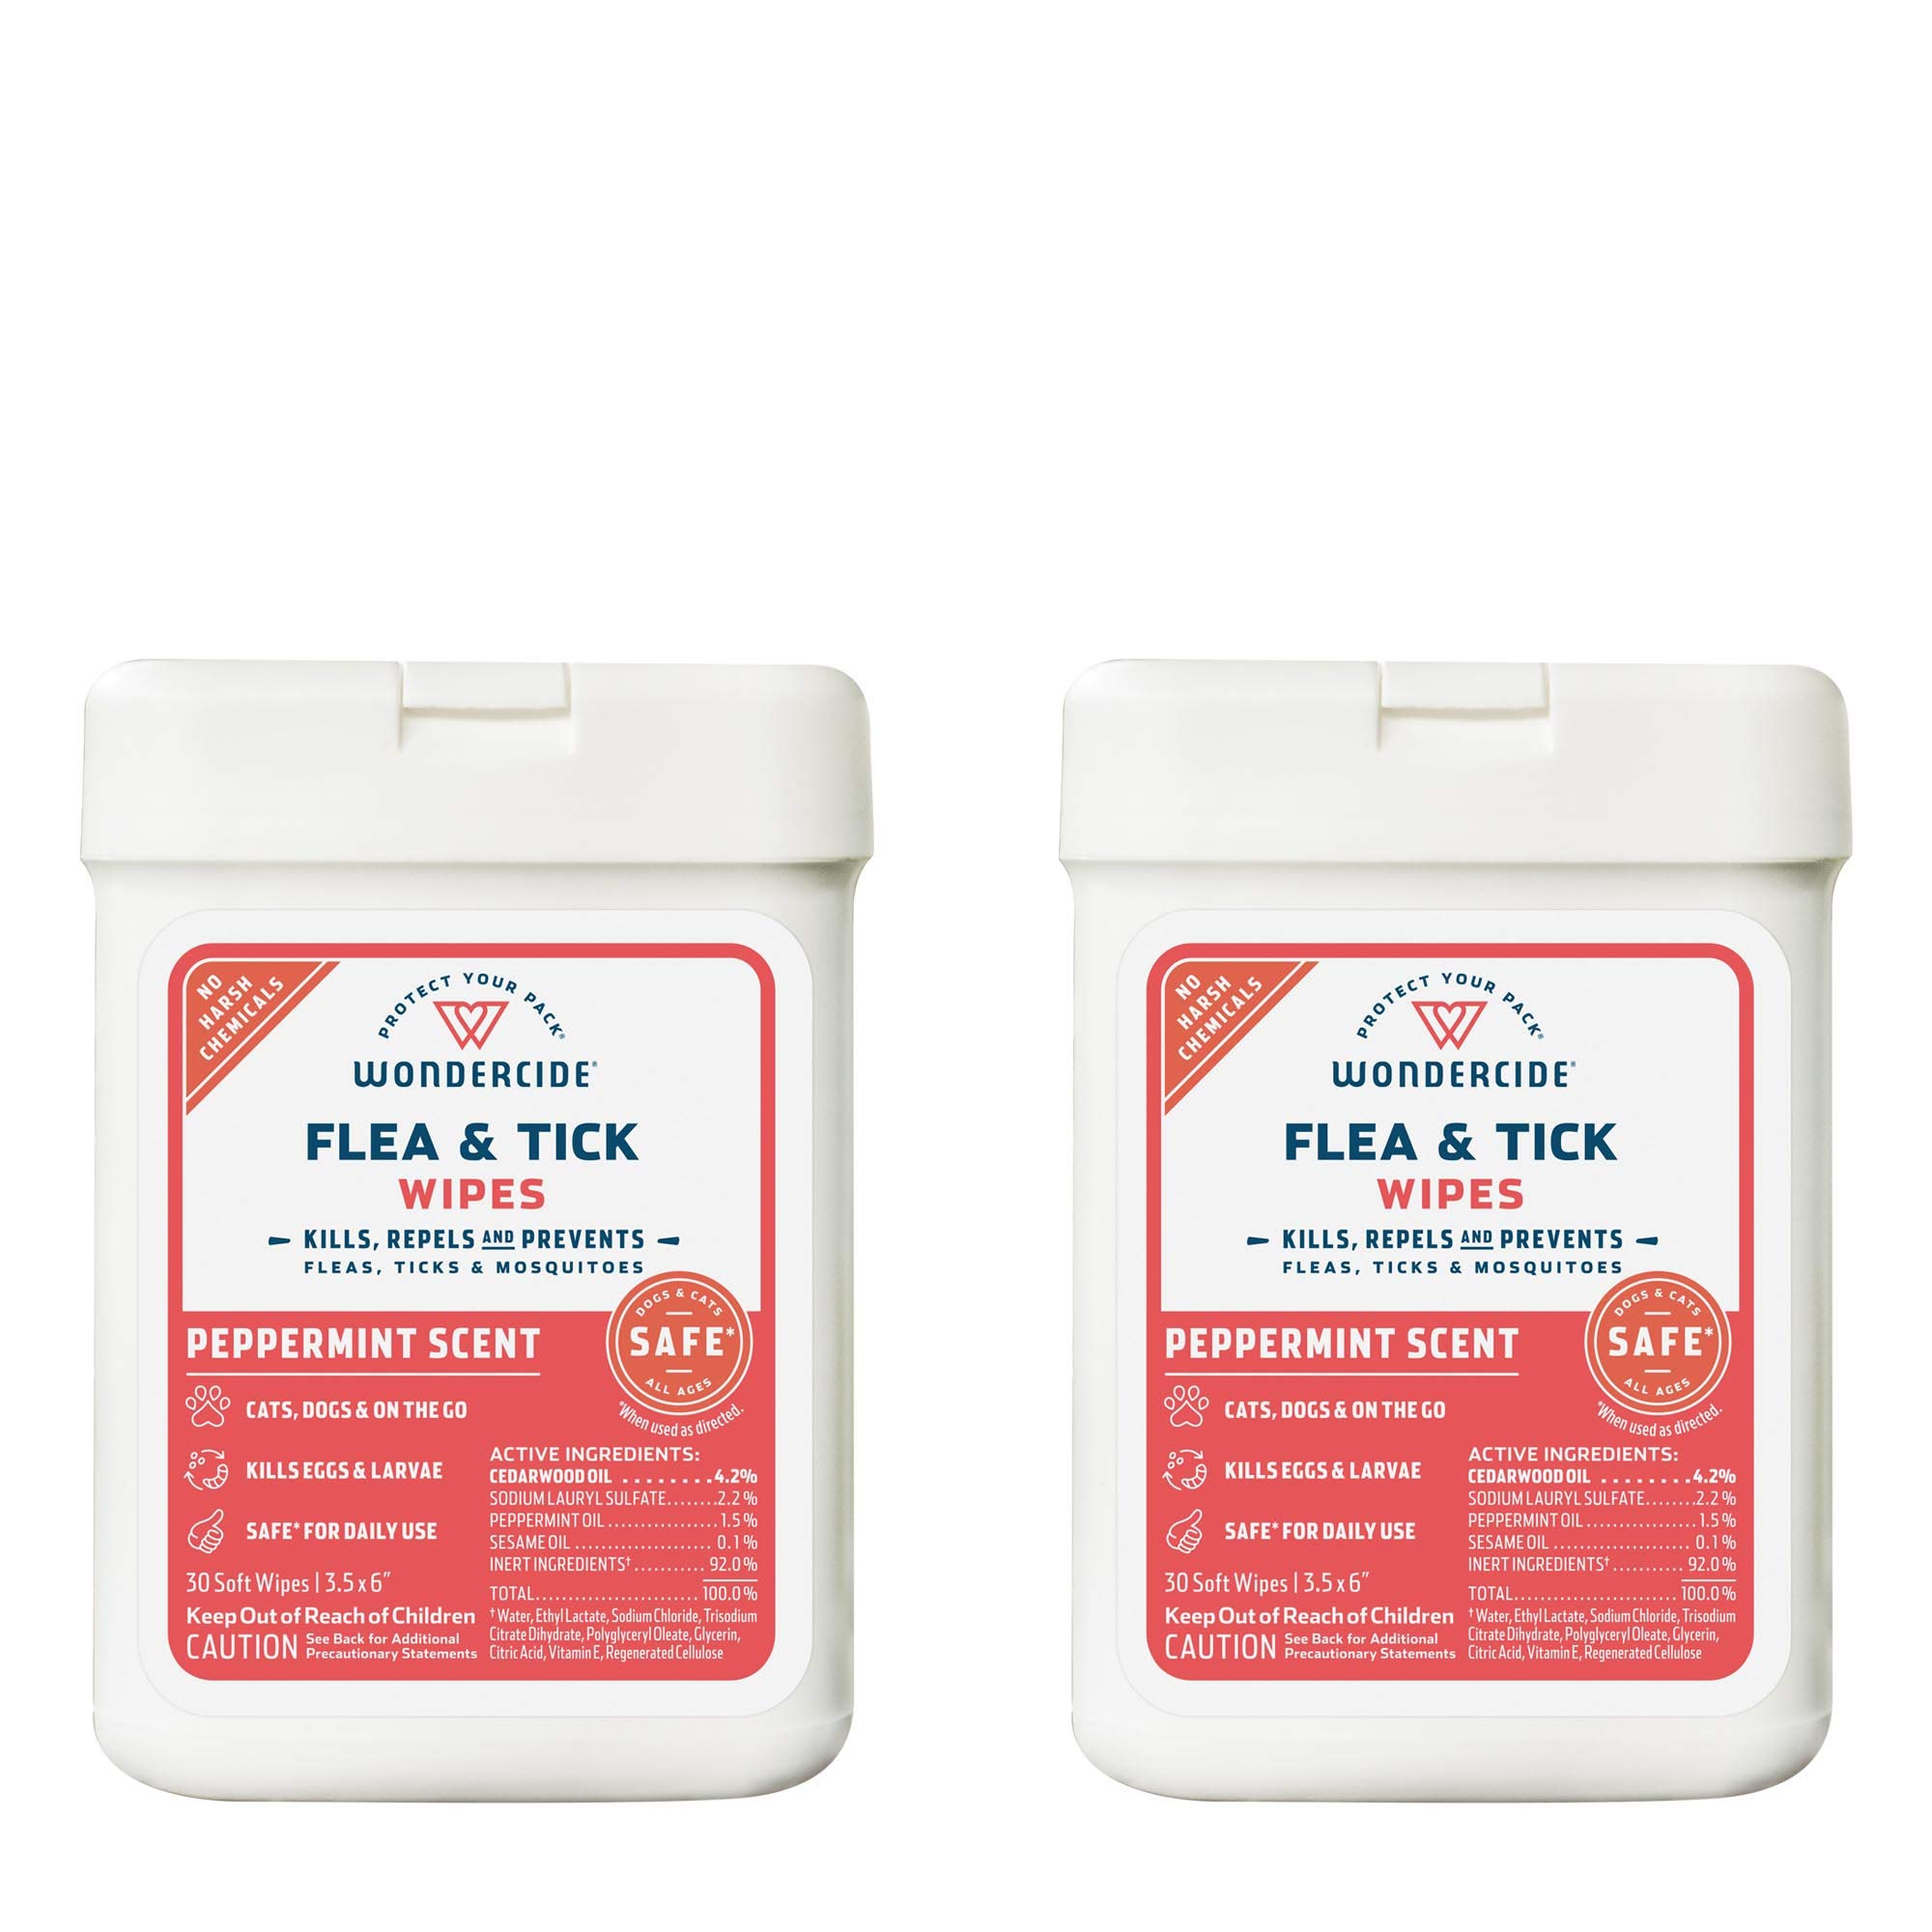 Wondercide Natural Flea, Tick and Mosquito Wipes for Dogs and Cats – Flea and Tick Killer, Treatment, Prevention – 2-Pack Peppermint